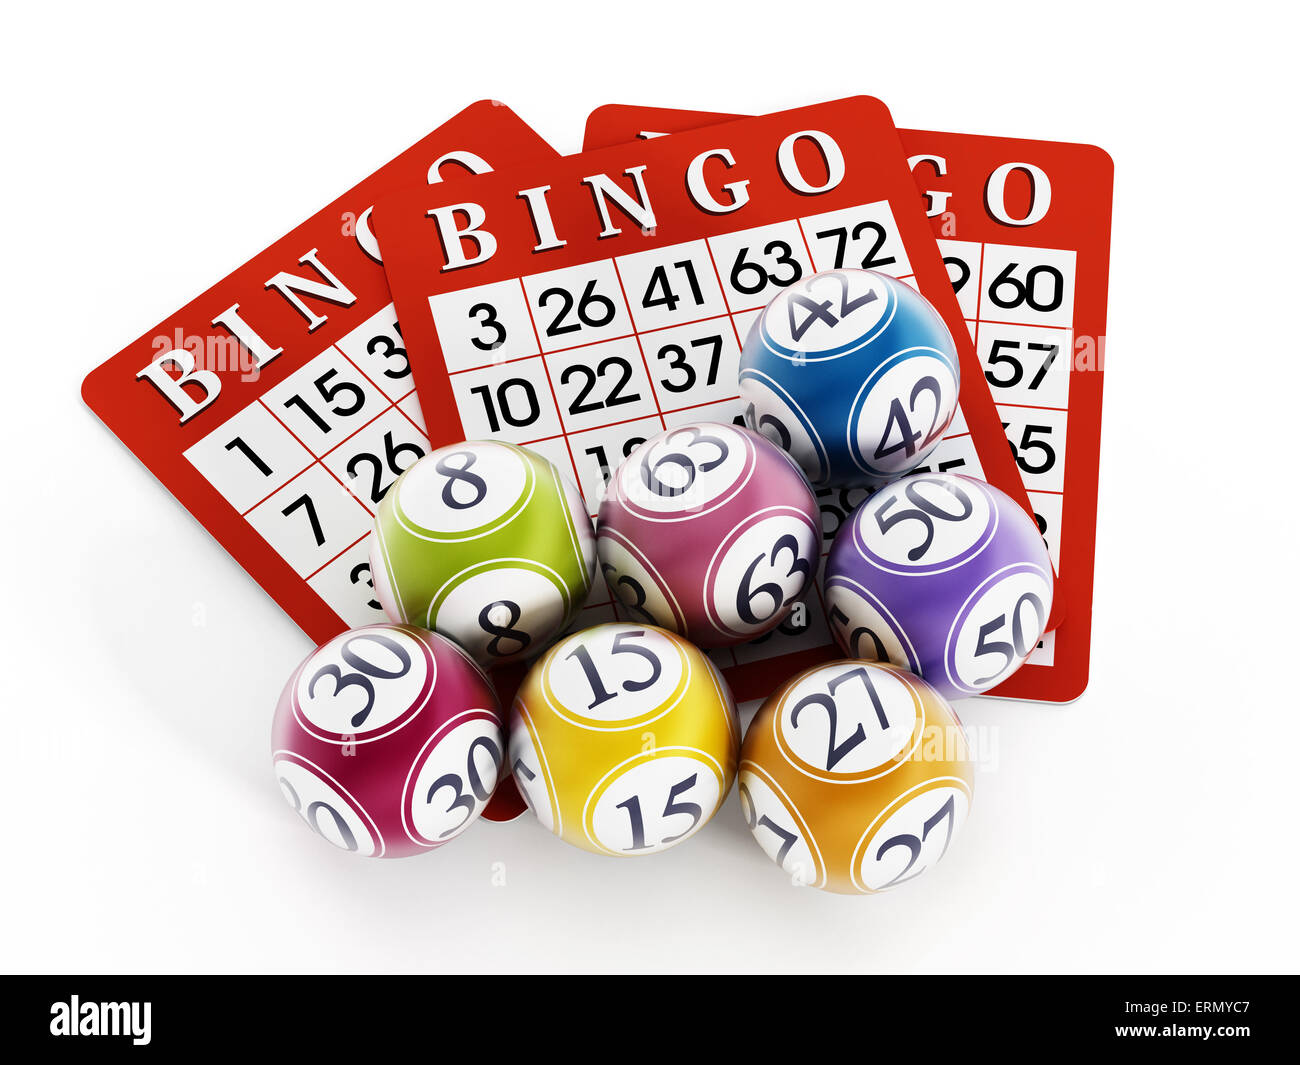 Bingo balls and cards isolated on white background. - Stock Image